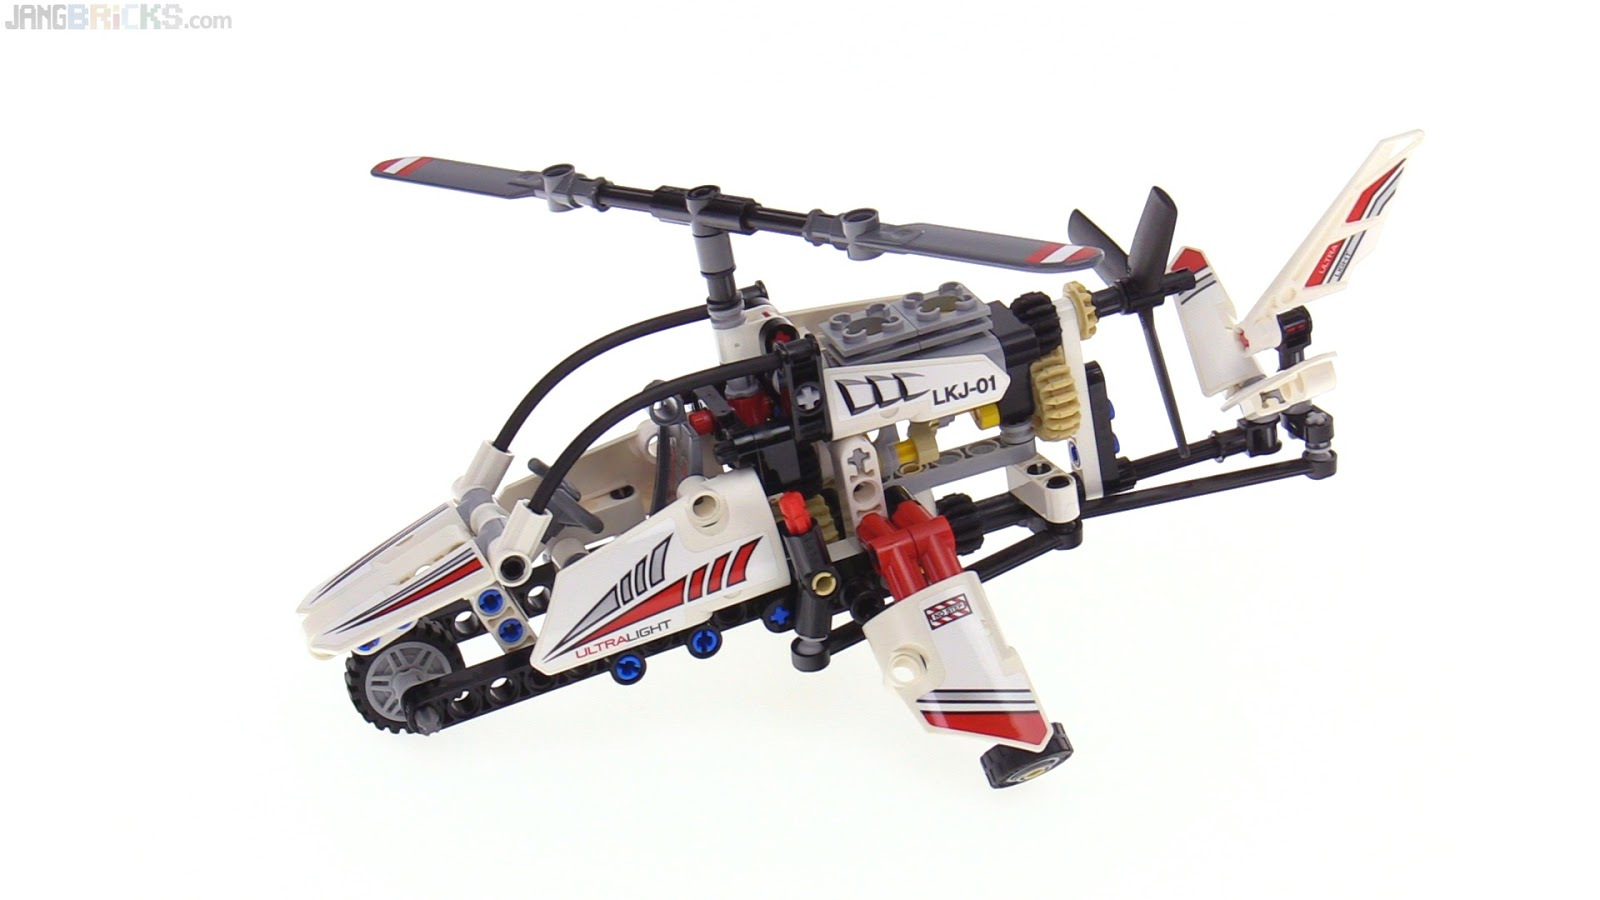 duplo fire helicopter with Lego Technic Ultralight Helicopter 2 In on Product info in addition Lego City 2012 Set Images And Details additionally Fisher Price Laugh Learn Smart Stages Teaching Tote also Lego City 2017 Fishing Boat Review 60147 in addition 1591021 32454508881.